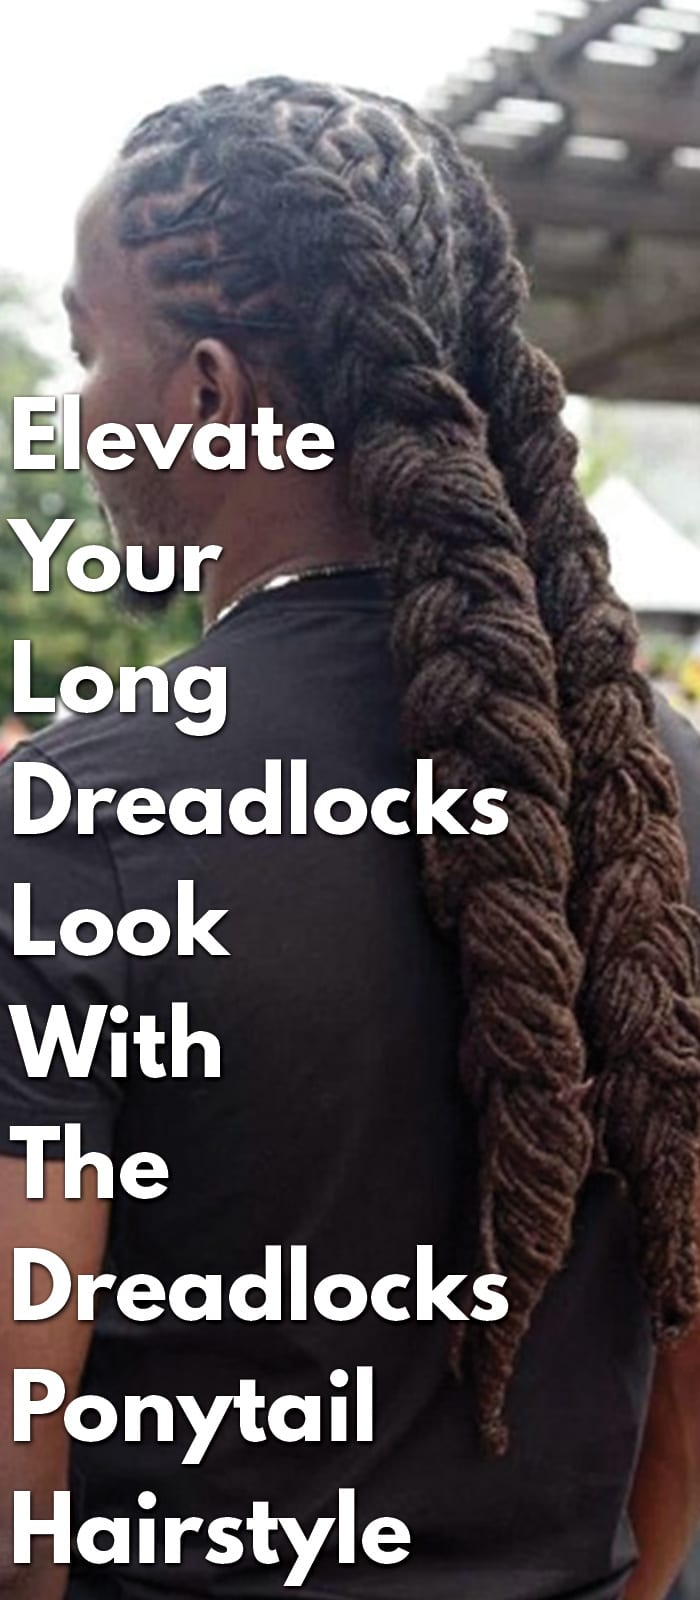 Elevate Your Dreadlocks Ponytail Hairstyle